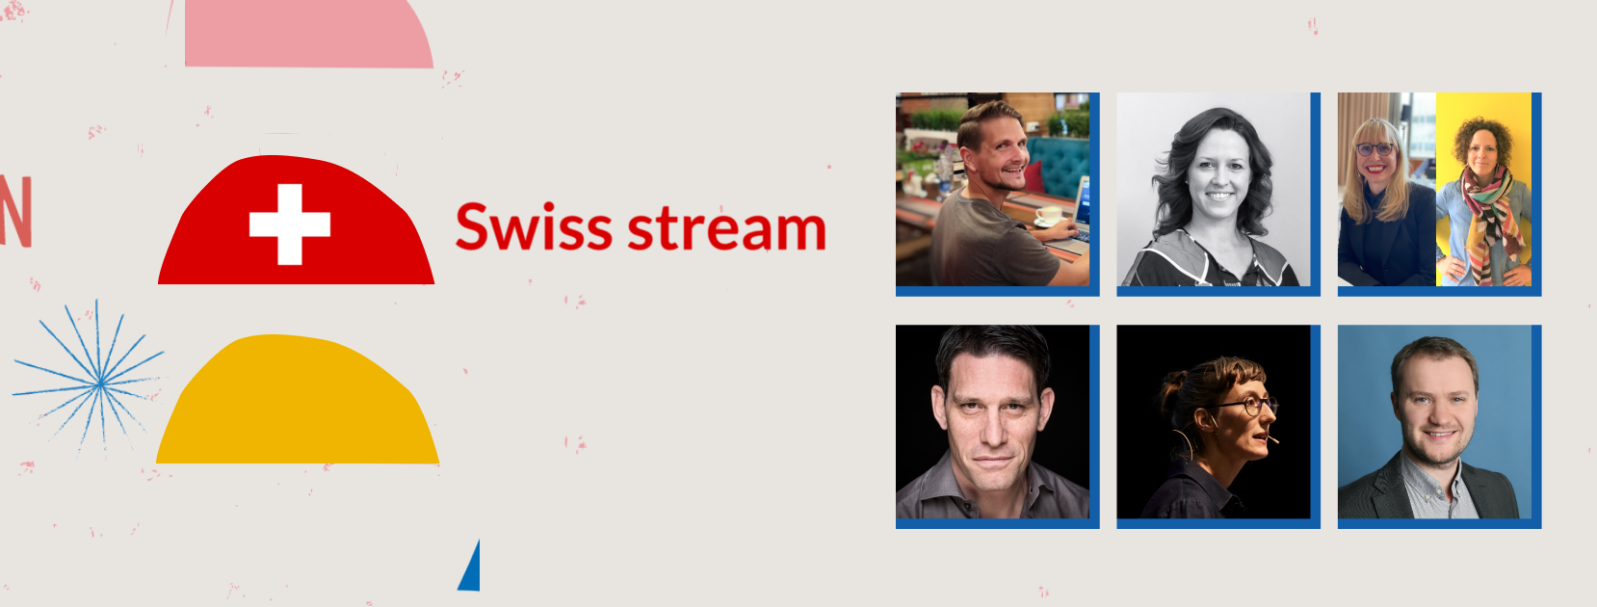 Interaction Design Day 2020 - Swiss stream